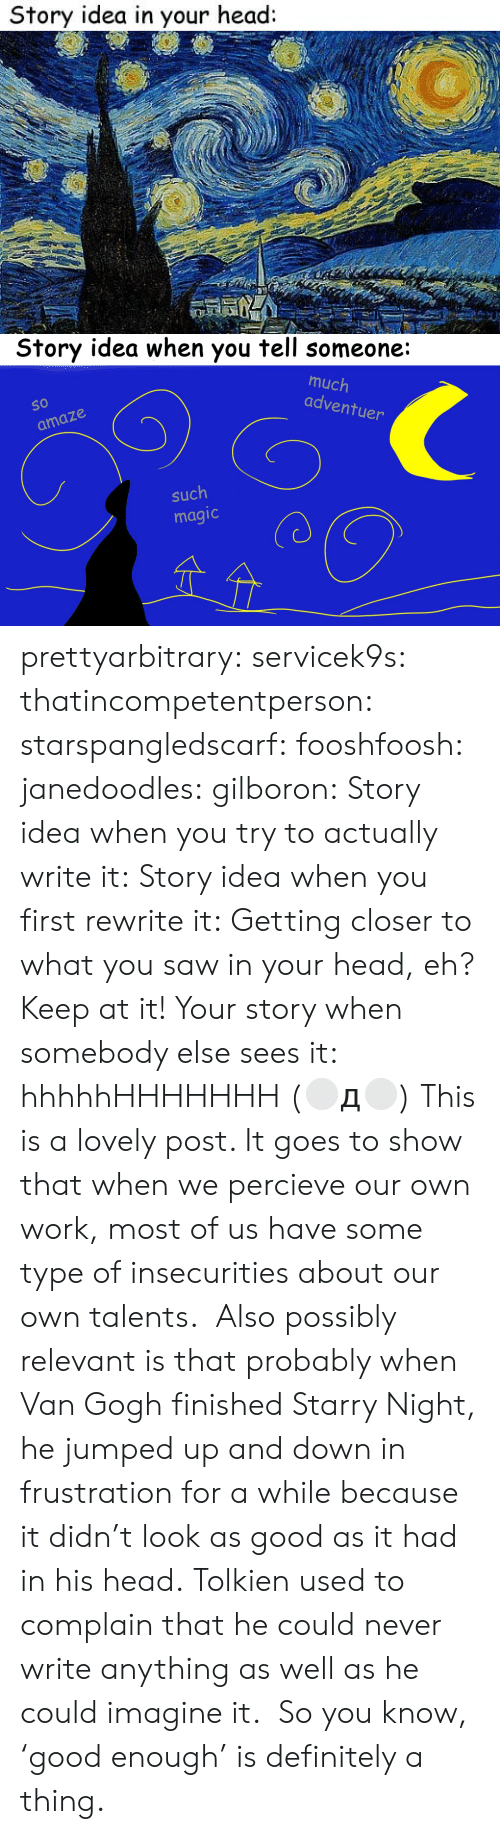 amaze: Story idea in your head:   Story idea when you tell someone:  much  adventu  So  O 10  er  amaze  such  magic prettyarbitrary: servicek9s:  thatincompetentperson:  starspangledscarf:  fooshfoosh:  janedoodles:  gilboron:  Story idea when you try to actually write it:  Story idea when you first rewrite it:  Getting closer to what you saw in your head, eh? Keep at it!  Your story when somebody elsesees it:      hhhhhHHHHHHH  (⚪д⚪)  This is a lovely post. It goes to show that when we percieve our own work, most of us have some type of insecurities about our own talents.  Also possibly relevant is that probably when Van Gogh finished Starry Night, he jumped up and down in frustration for a while because it didn't look as good as it had in his head. Tolkien used to complain that he could never write anything as well as he could imagine it. So you know, 'good enough' is definitely a thing.